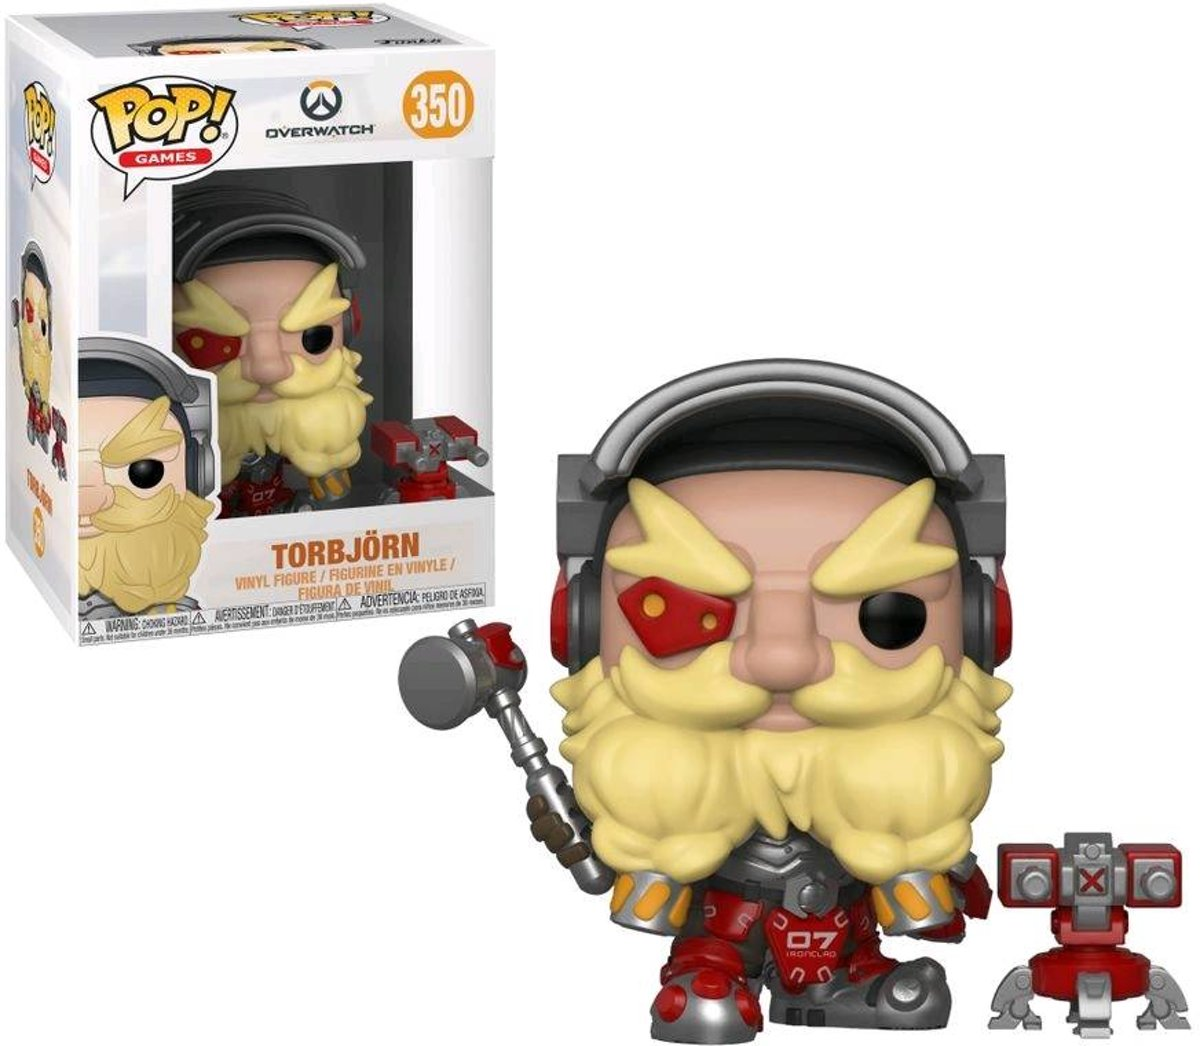 Pop Overwatch Torbjorn Vinyl Figure